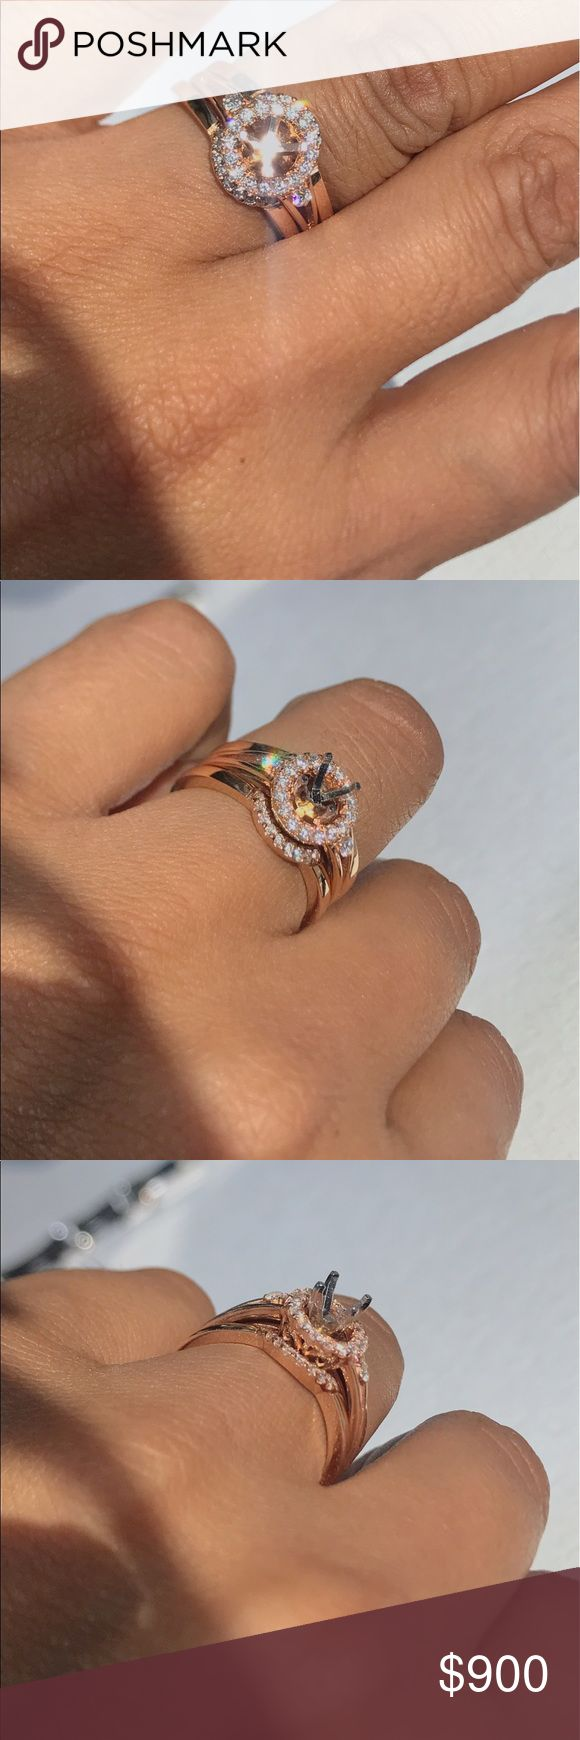 14K RoseGold Diamond Halo Engagement Ring Mounting 14K Rose Gold Diamond Halo Engagement Ring: Materials // 14k Rose Gold // Authentic Natural Diamonds // the side diamonds make up 0.64 tcw and are round brilliant cut // the center is made to fit a  half a Ct. (0.50 Ct ) diamond // princess or round diamond // Jewelry Rings